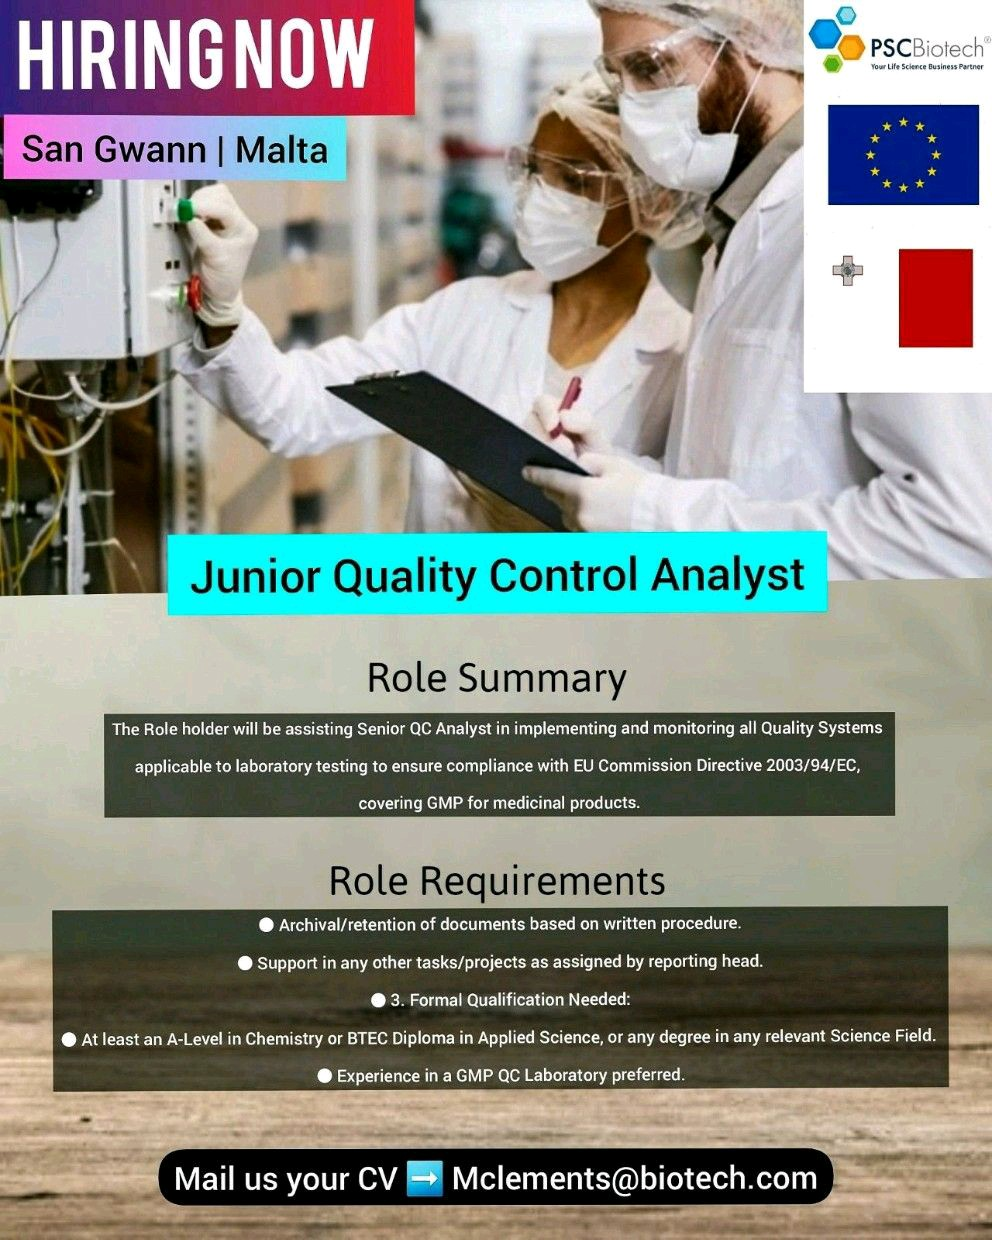 Opening For Quality Control Analyst At PSC Biotech At San & Malta